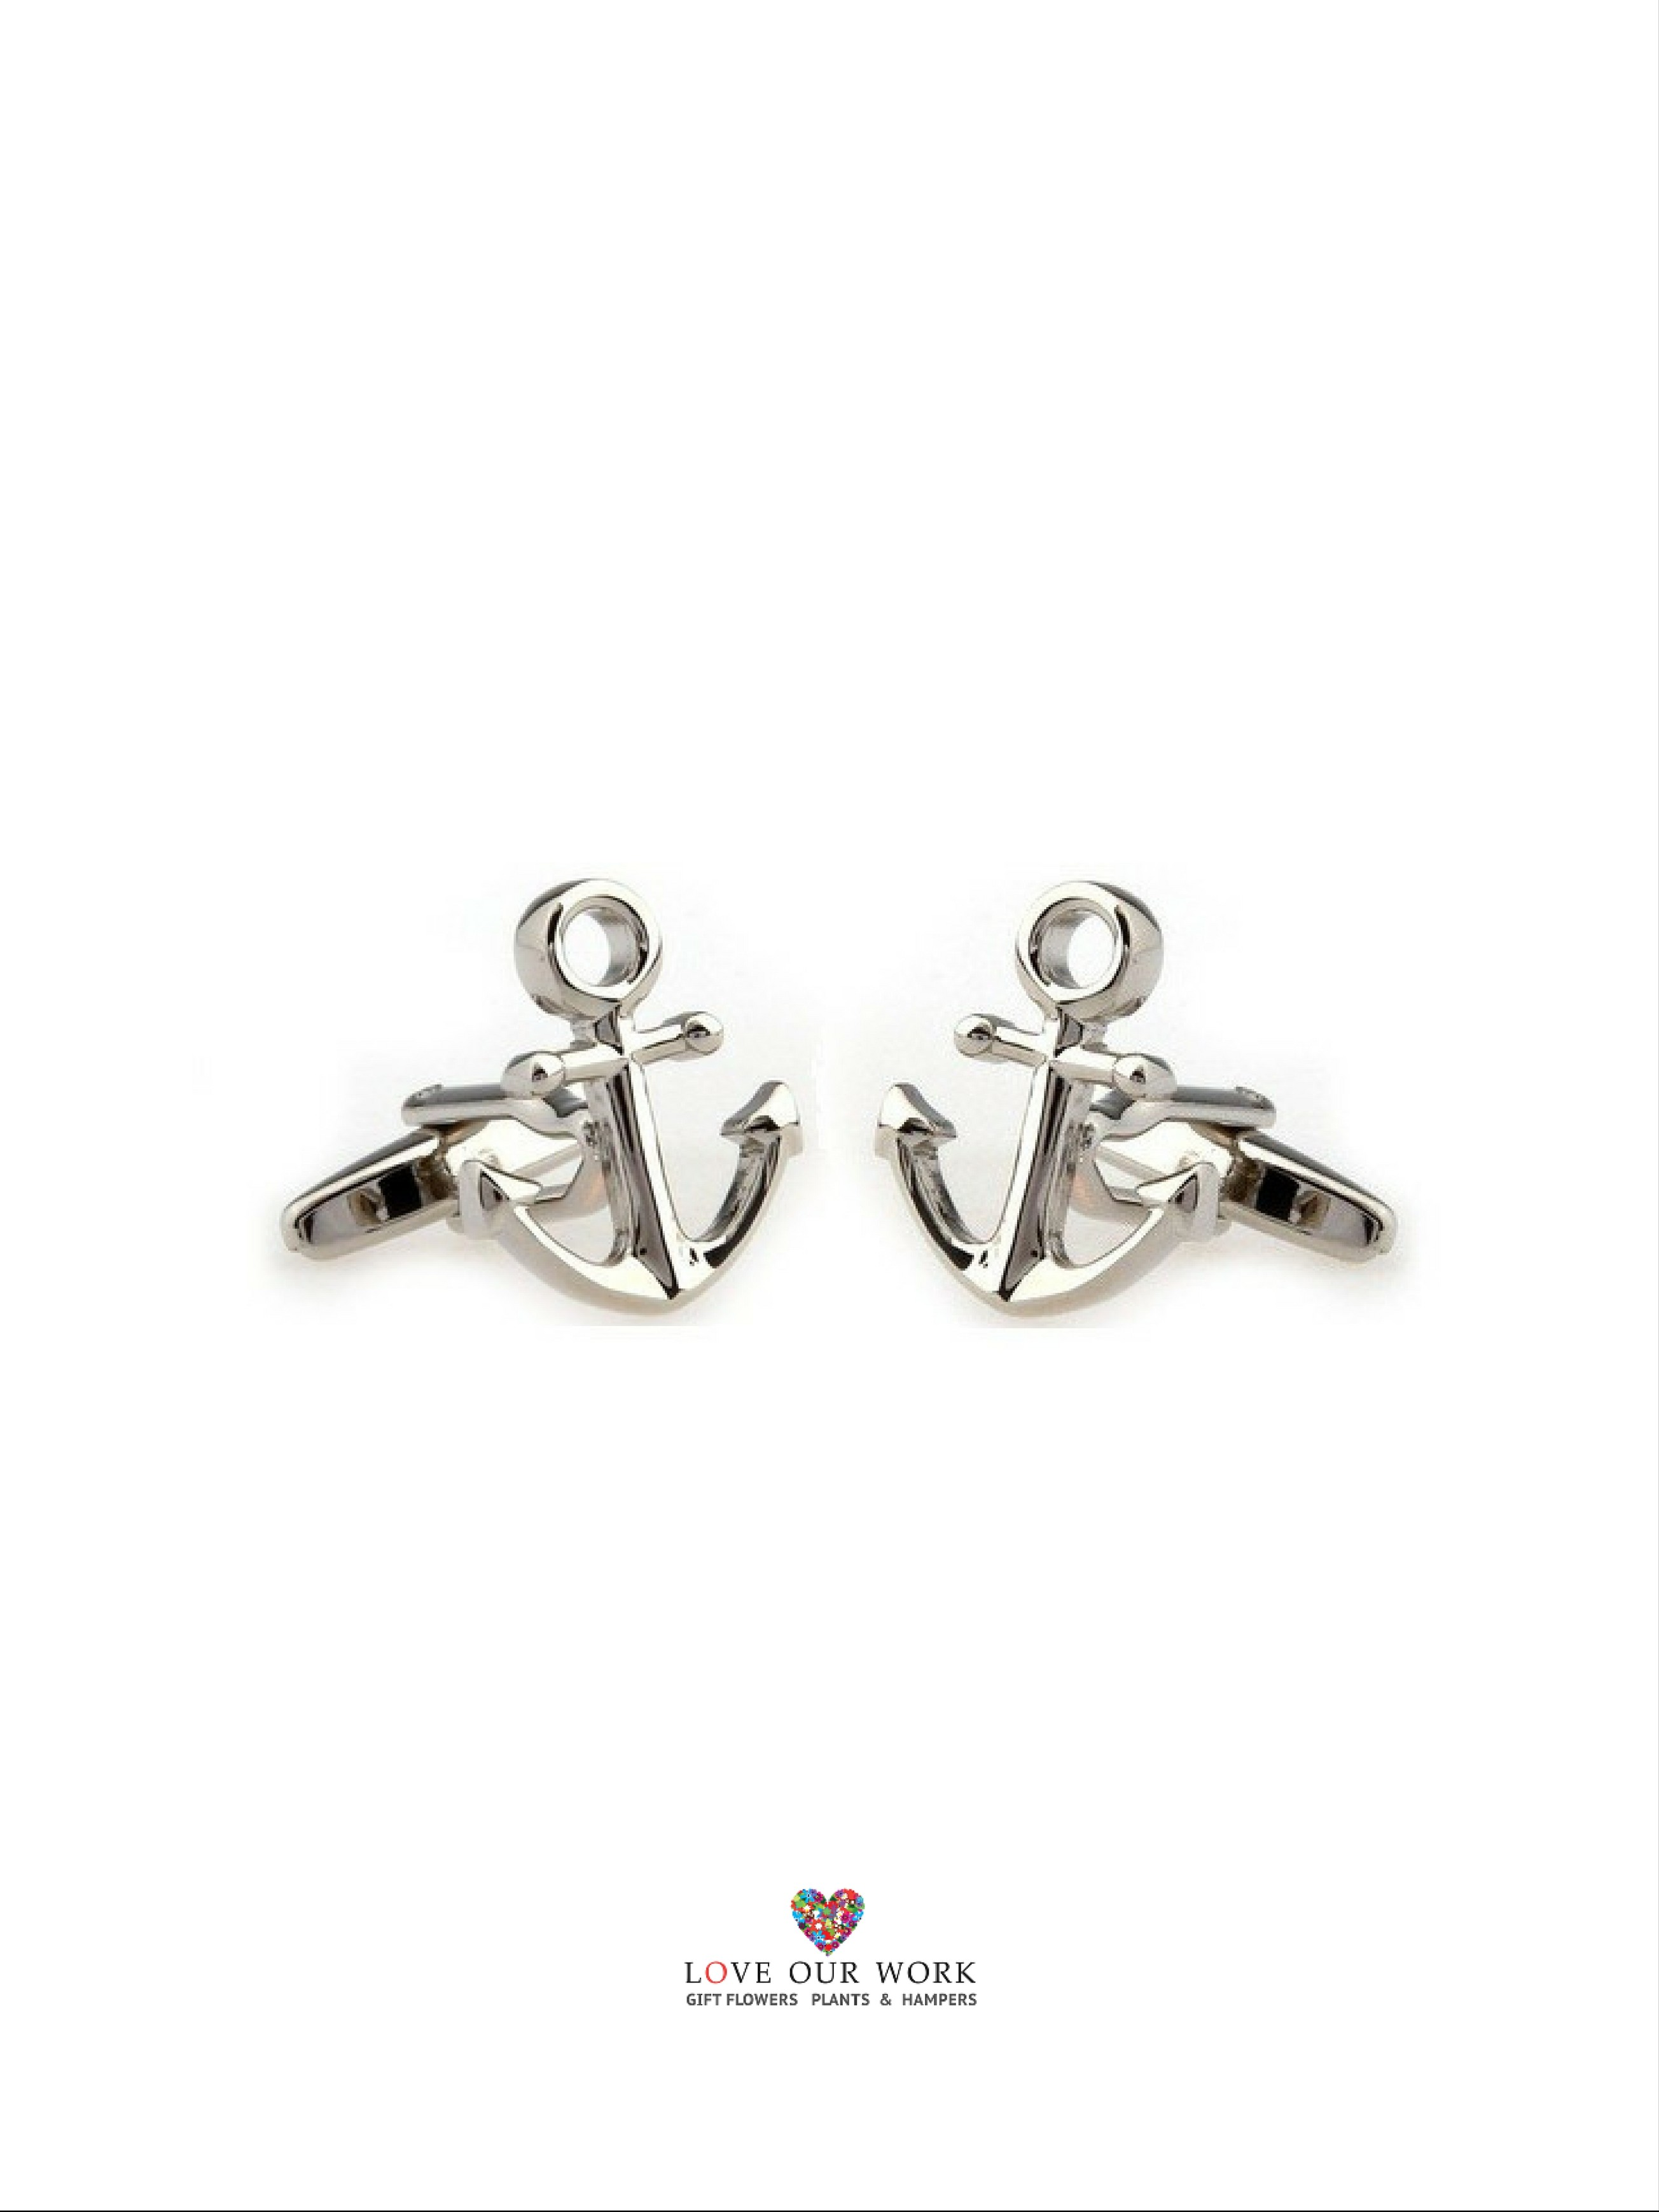 anchors aweigh online cufflinks sydney chatswood